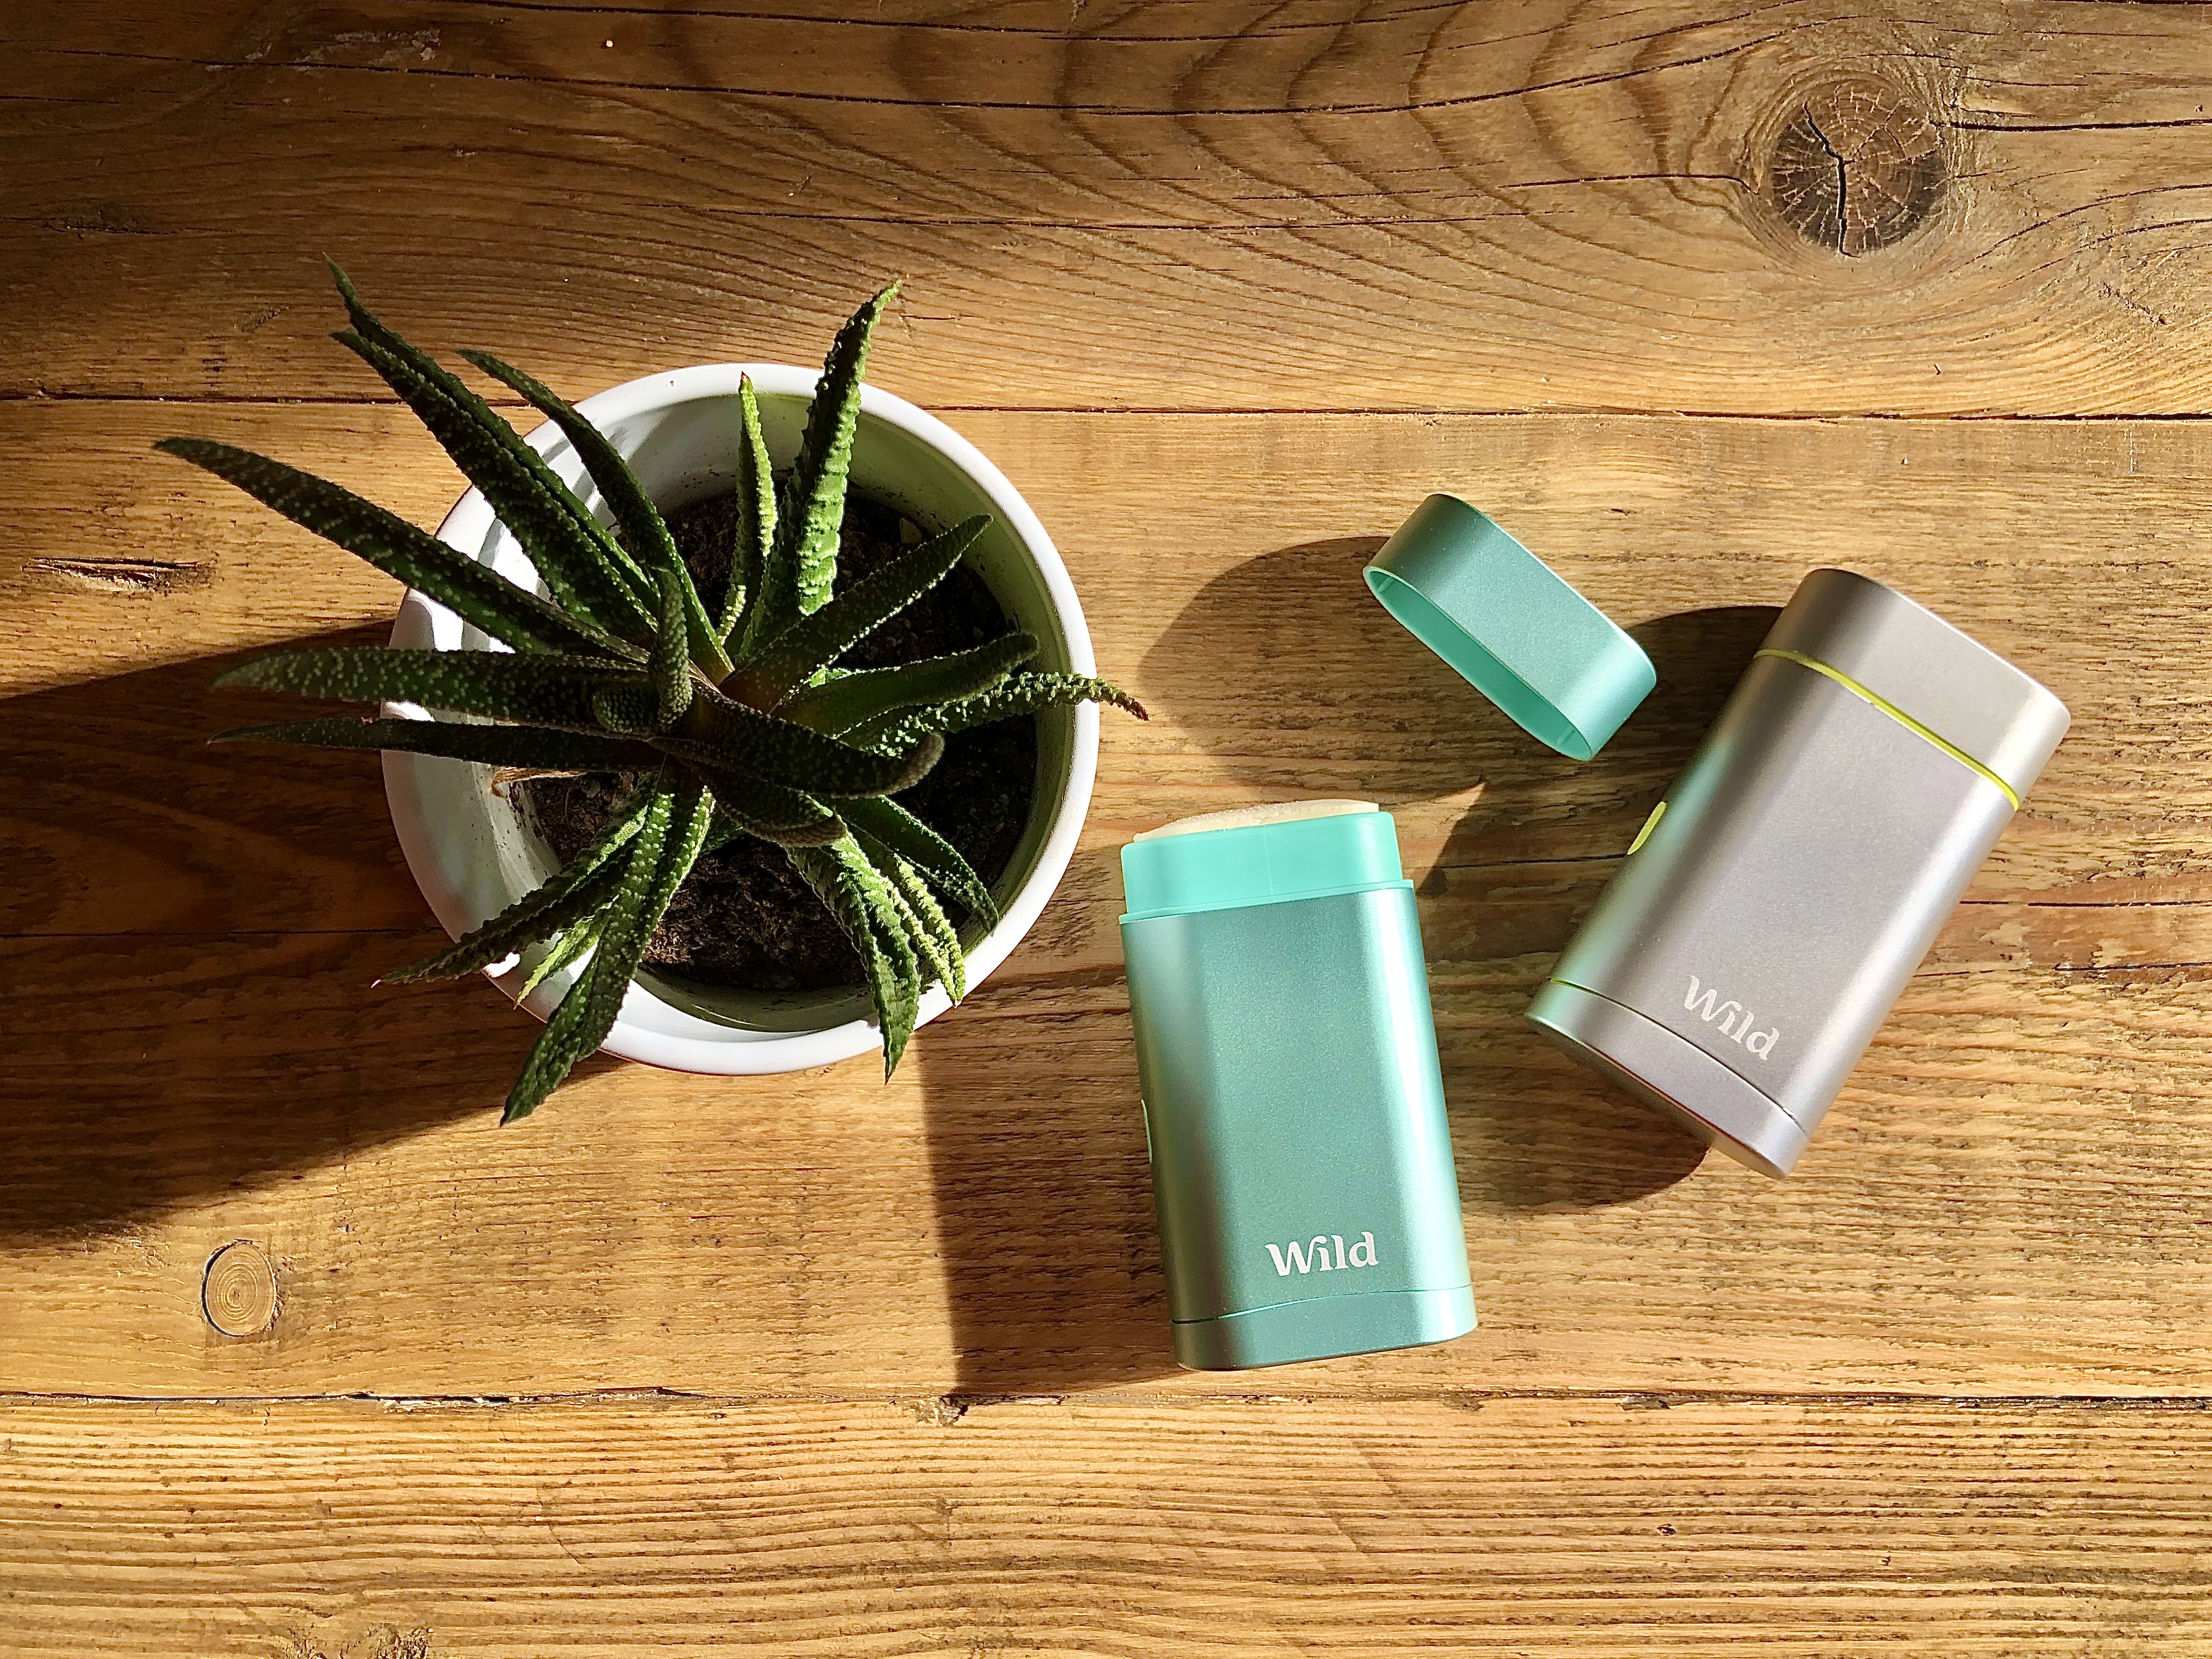 we are wild discount code natural deodorant subscription